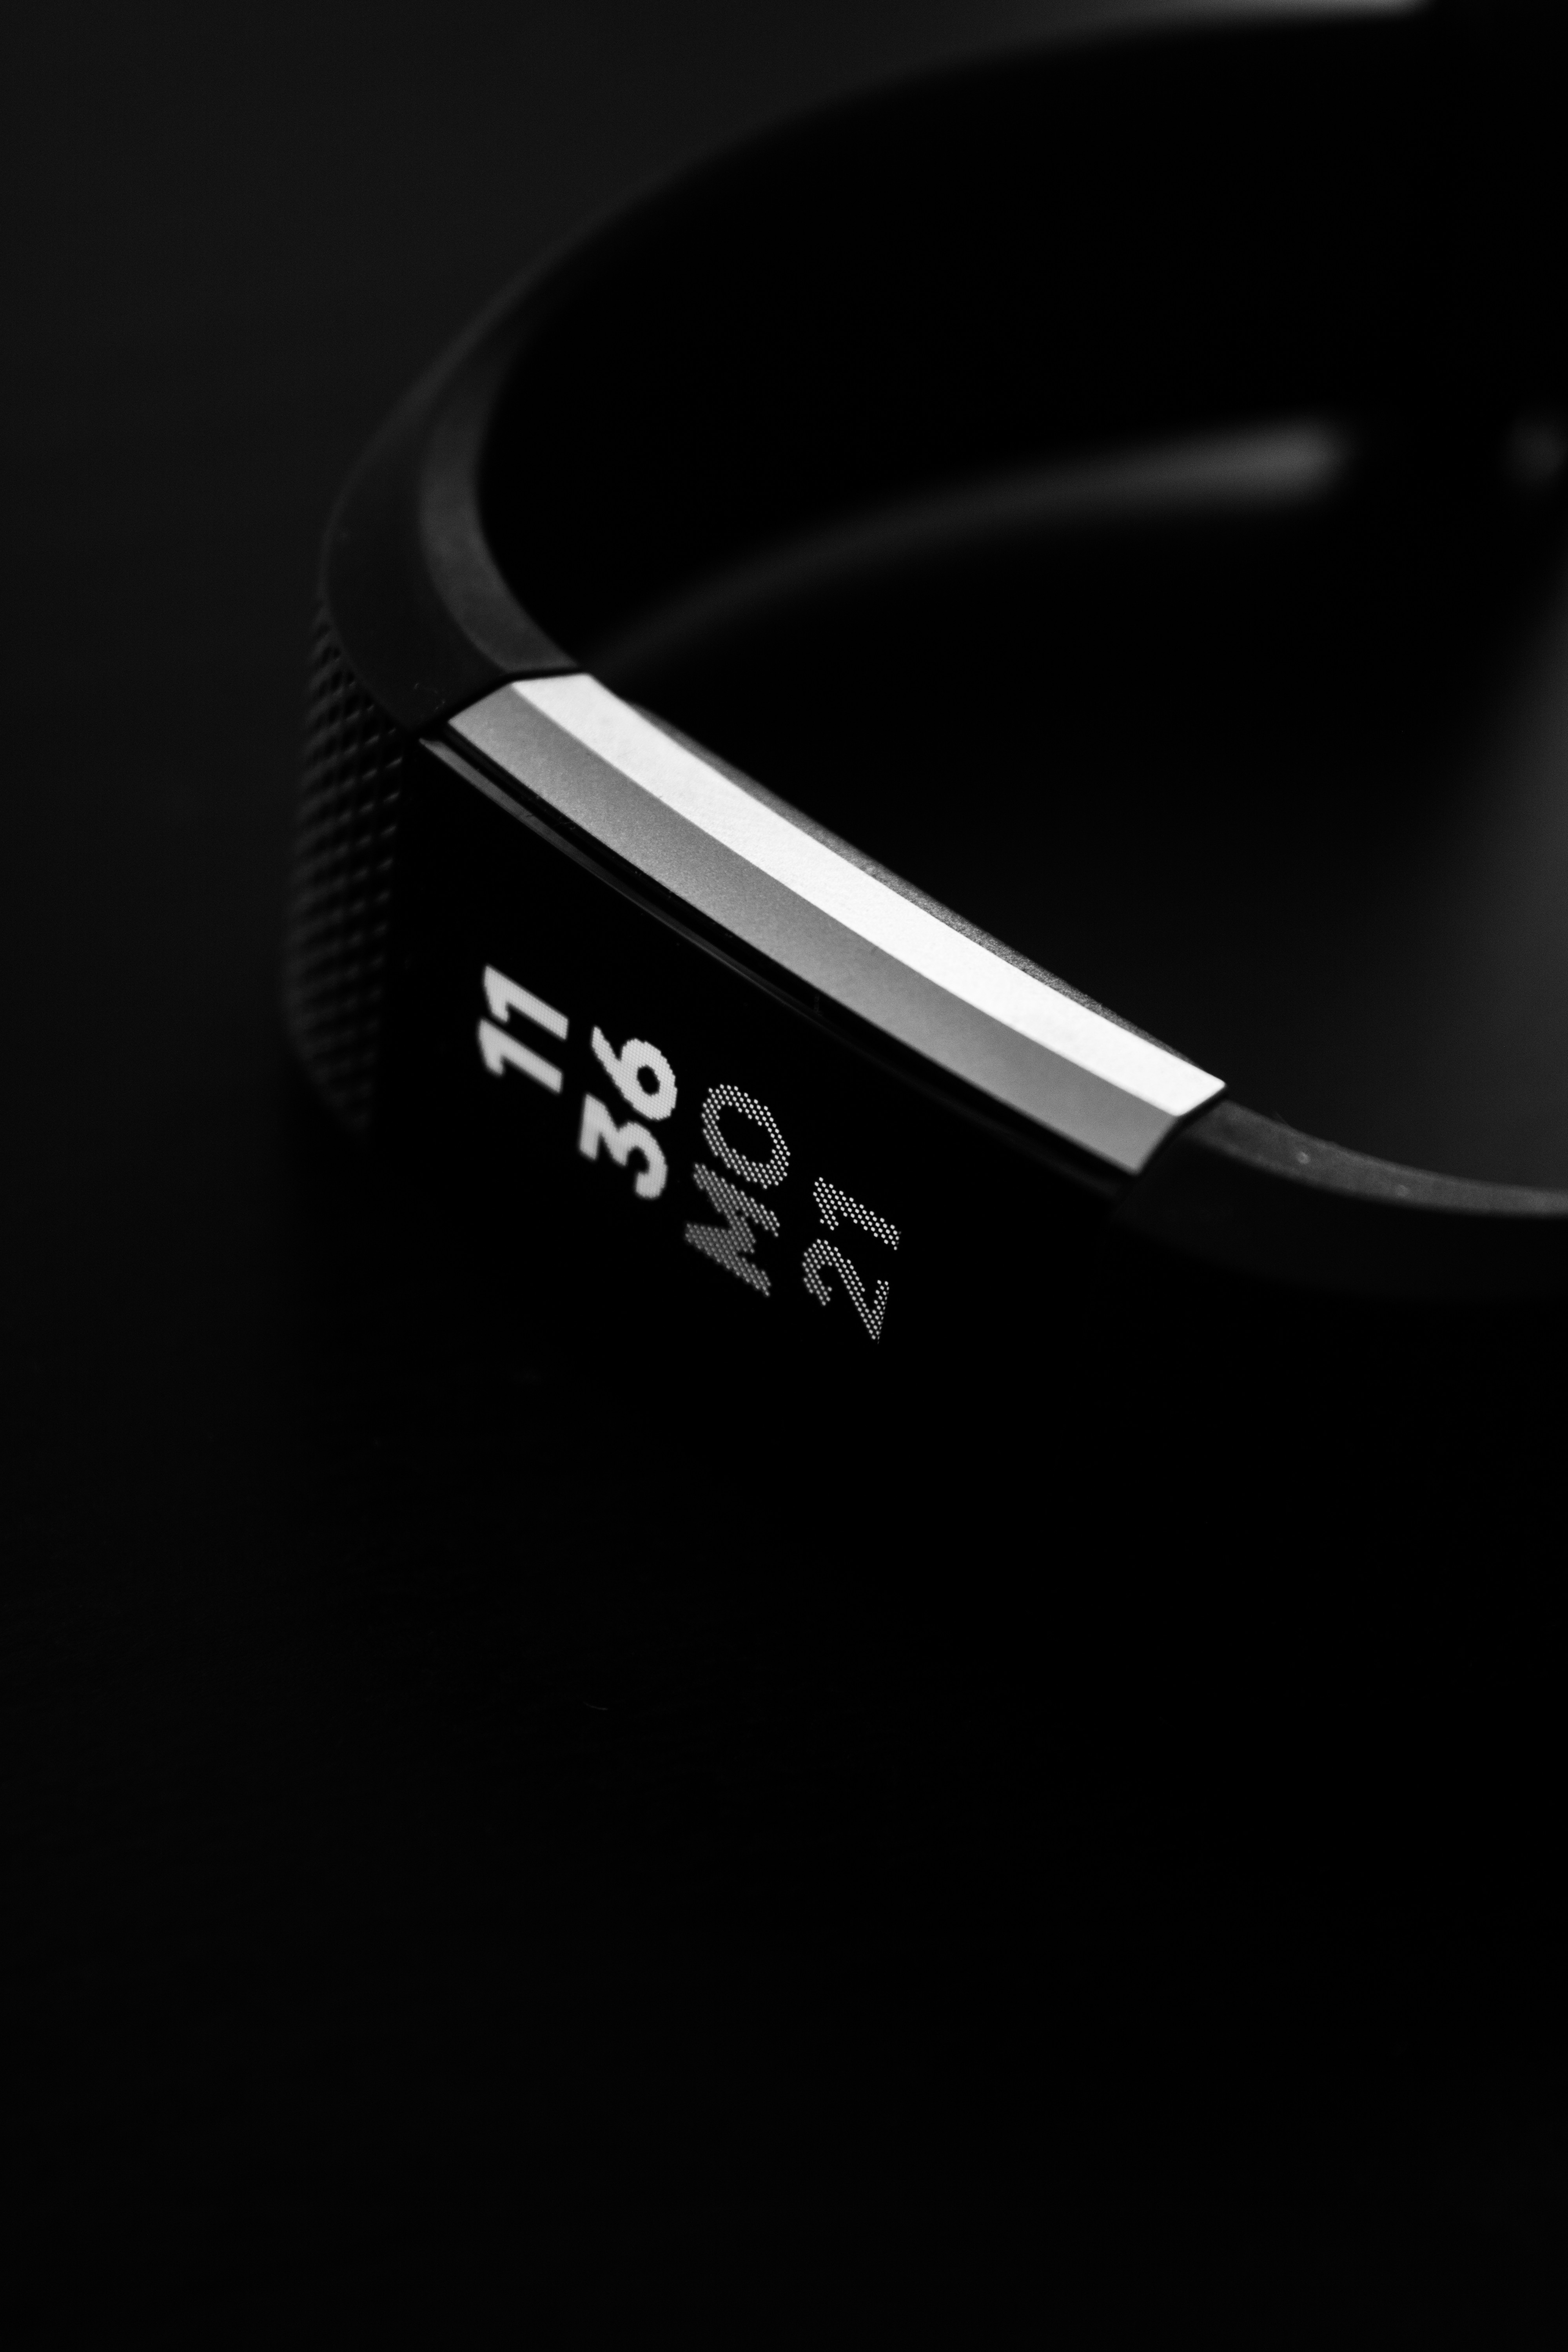 """A black Fitbit against a black background with silver details. The watch face reads """"11:36 MO 21."""""""